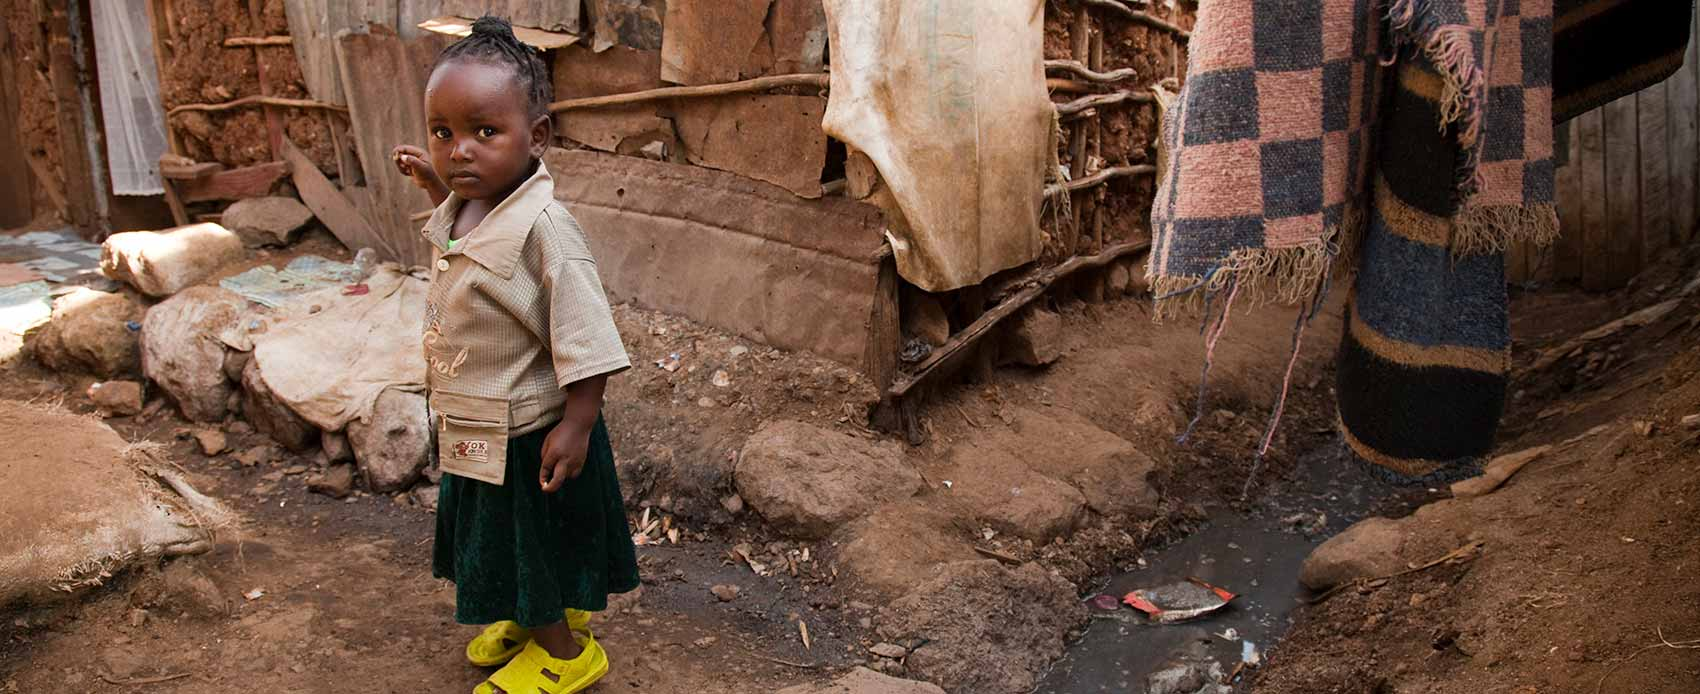 poverty in east africa Poverty in a rising africa, africa poverty report is the first of two sequential reports aimed at better understanding progress in poverty reduction in africa and.